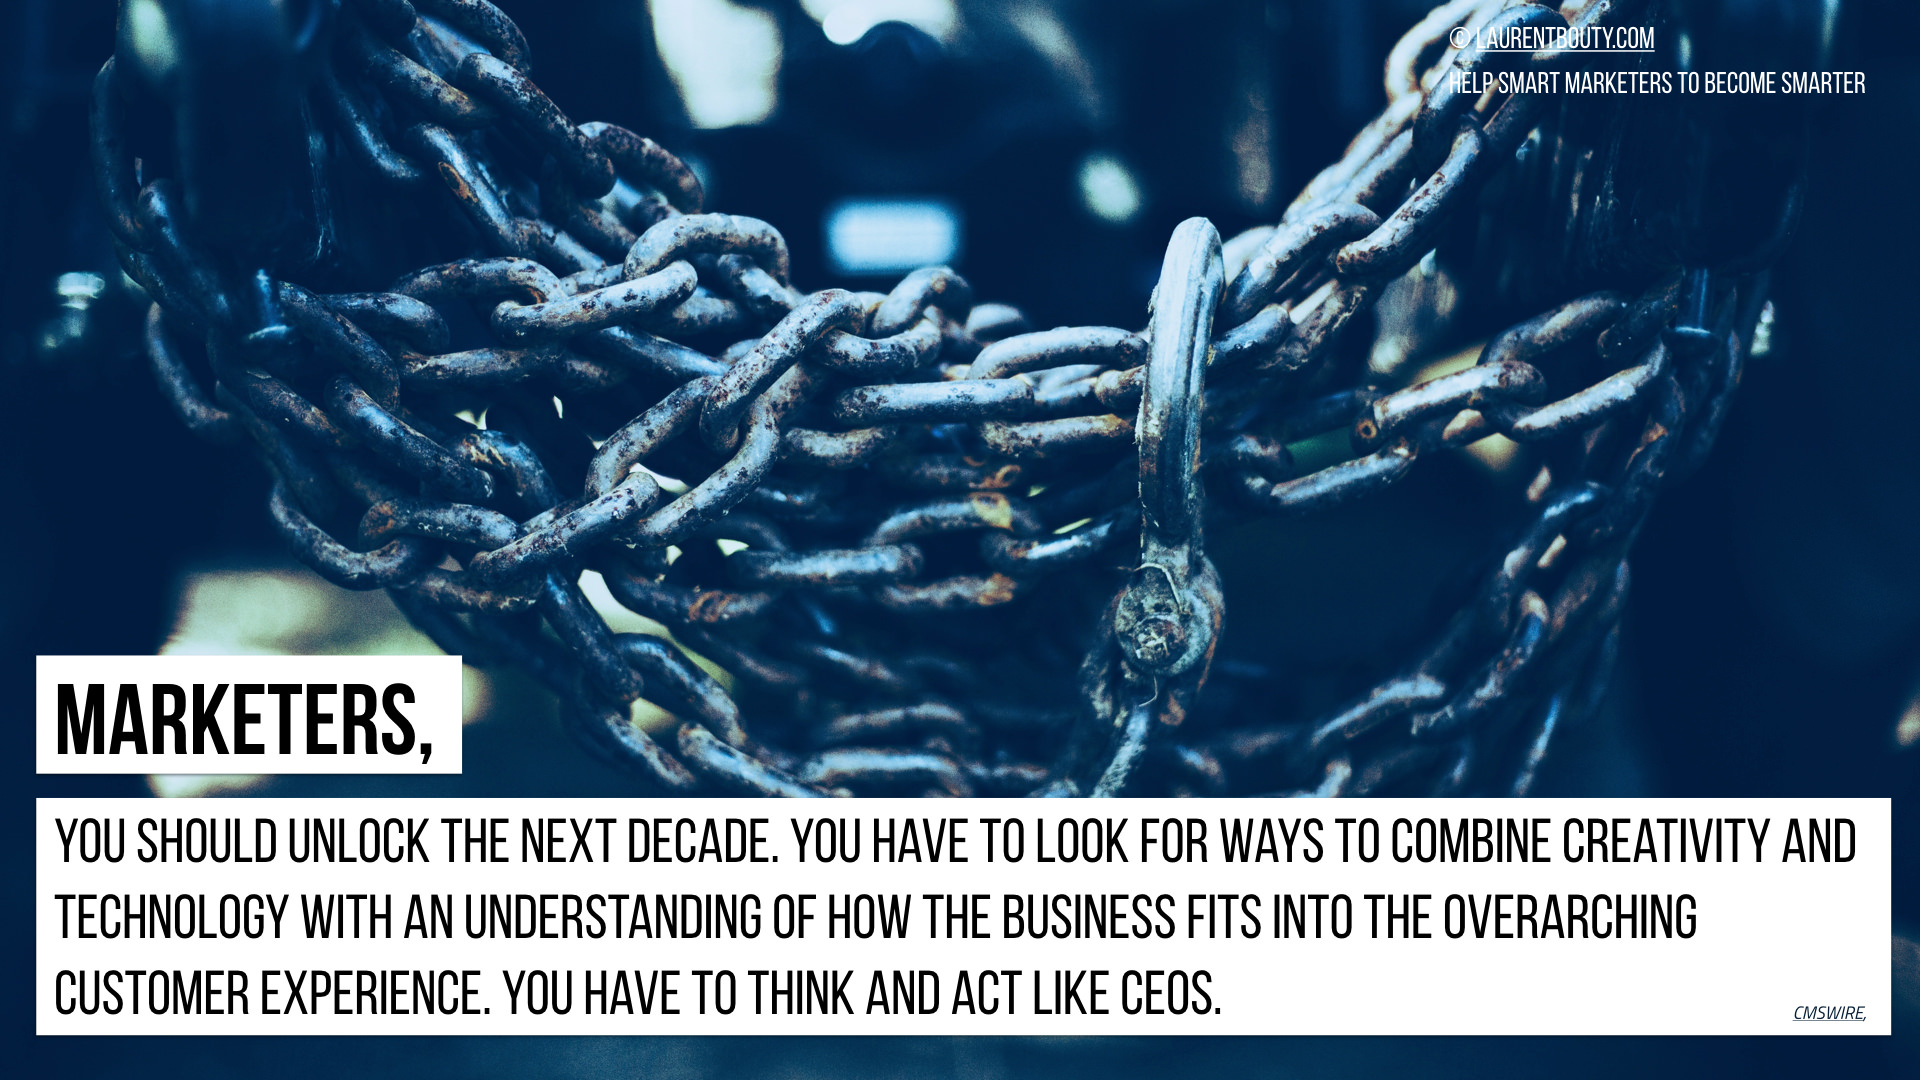 Marketers, You should unlock the next decade